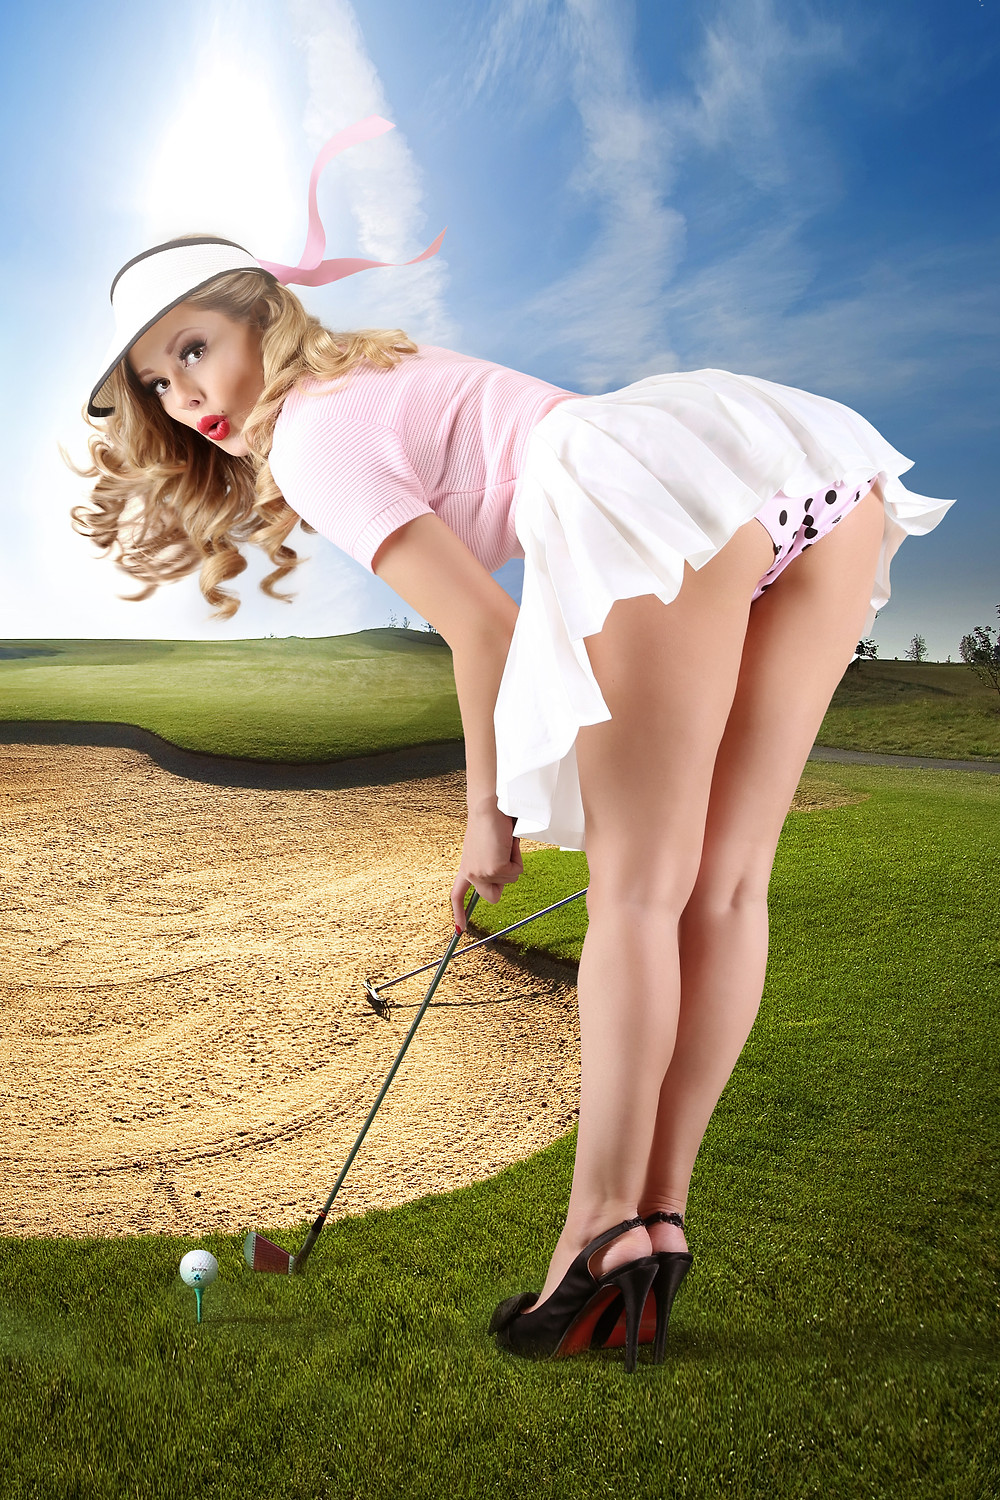 Heather Valentine Pin Up Model | Golf Pin Up By Dollhouse Photography